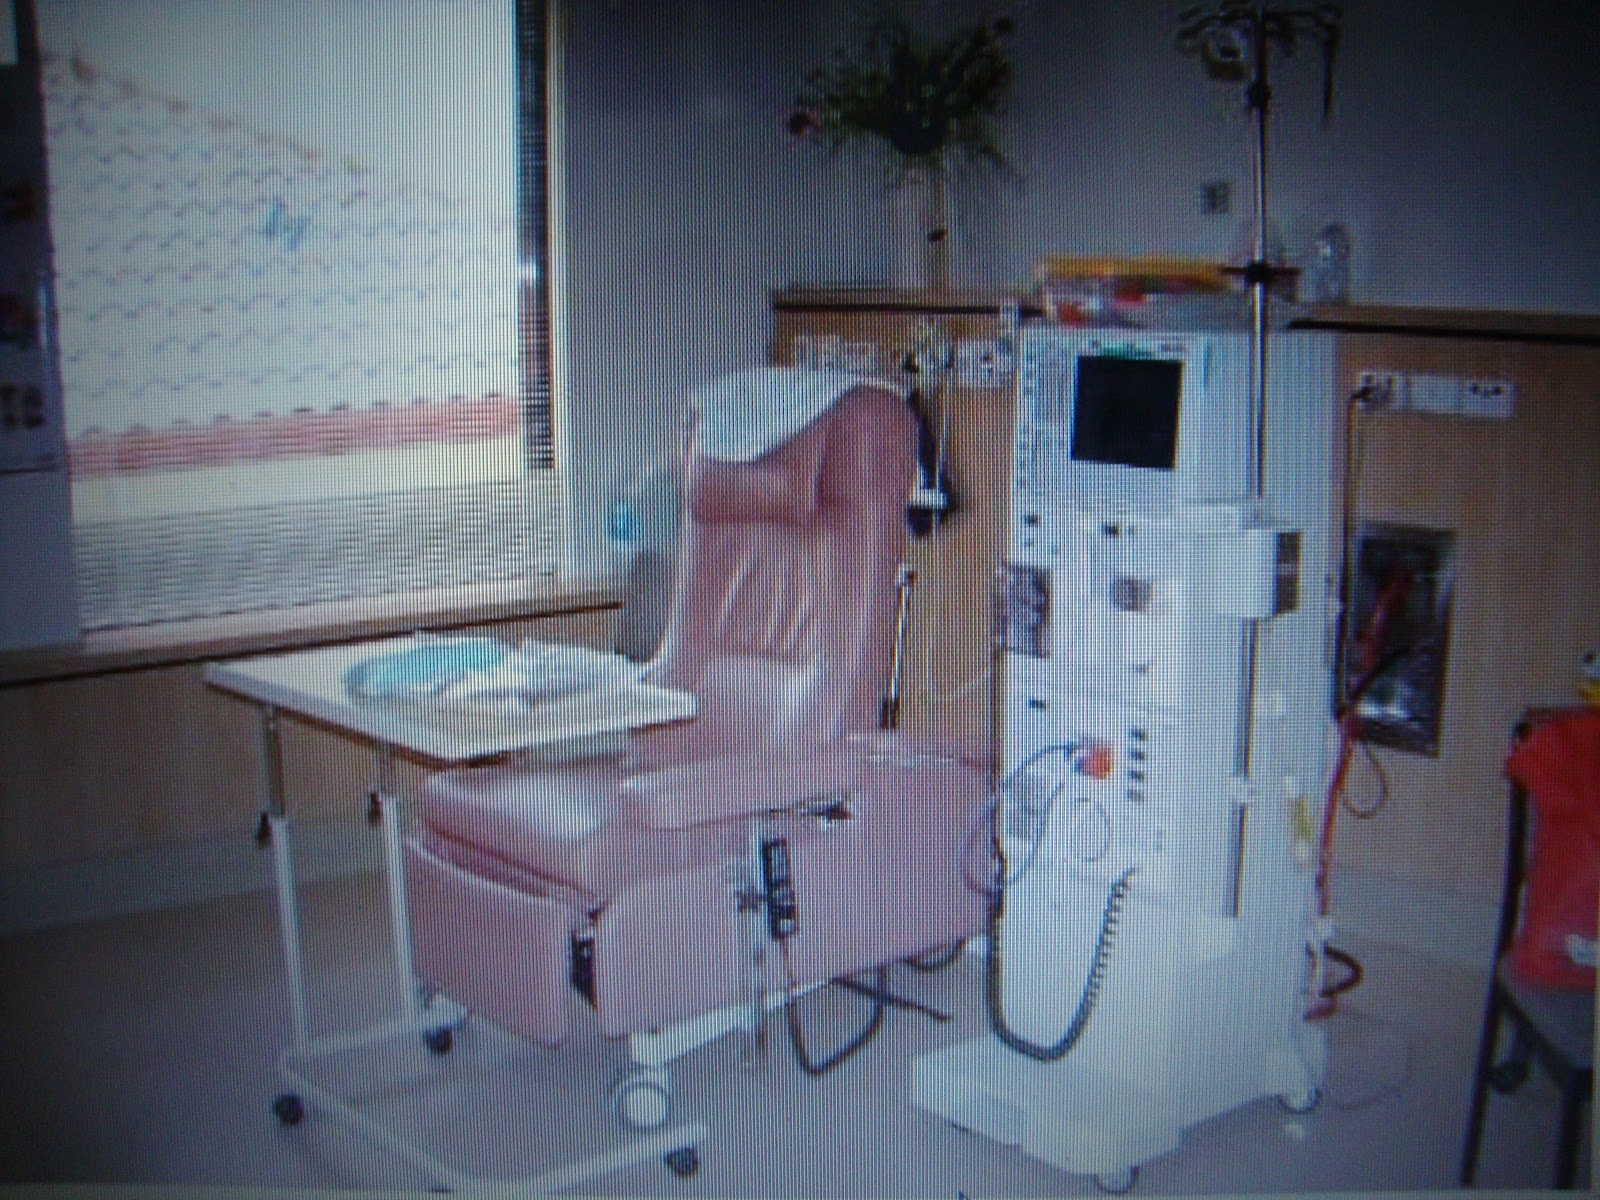 who invented dialysis machine